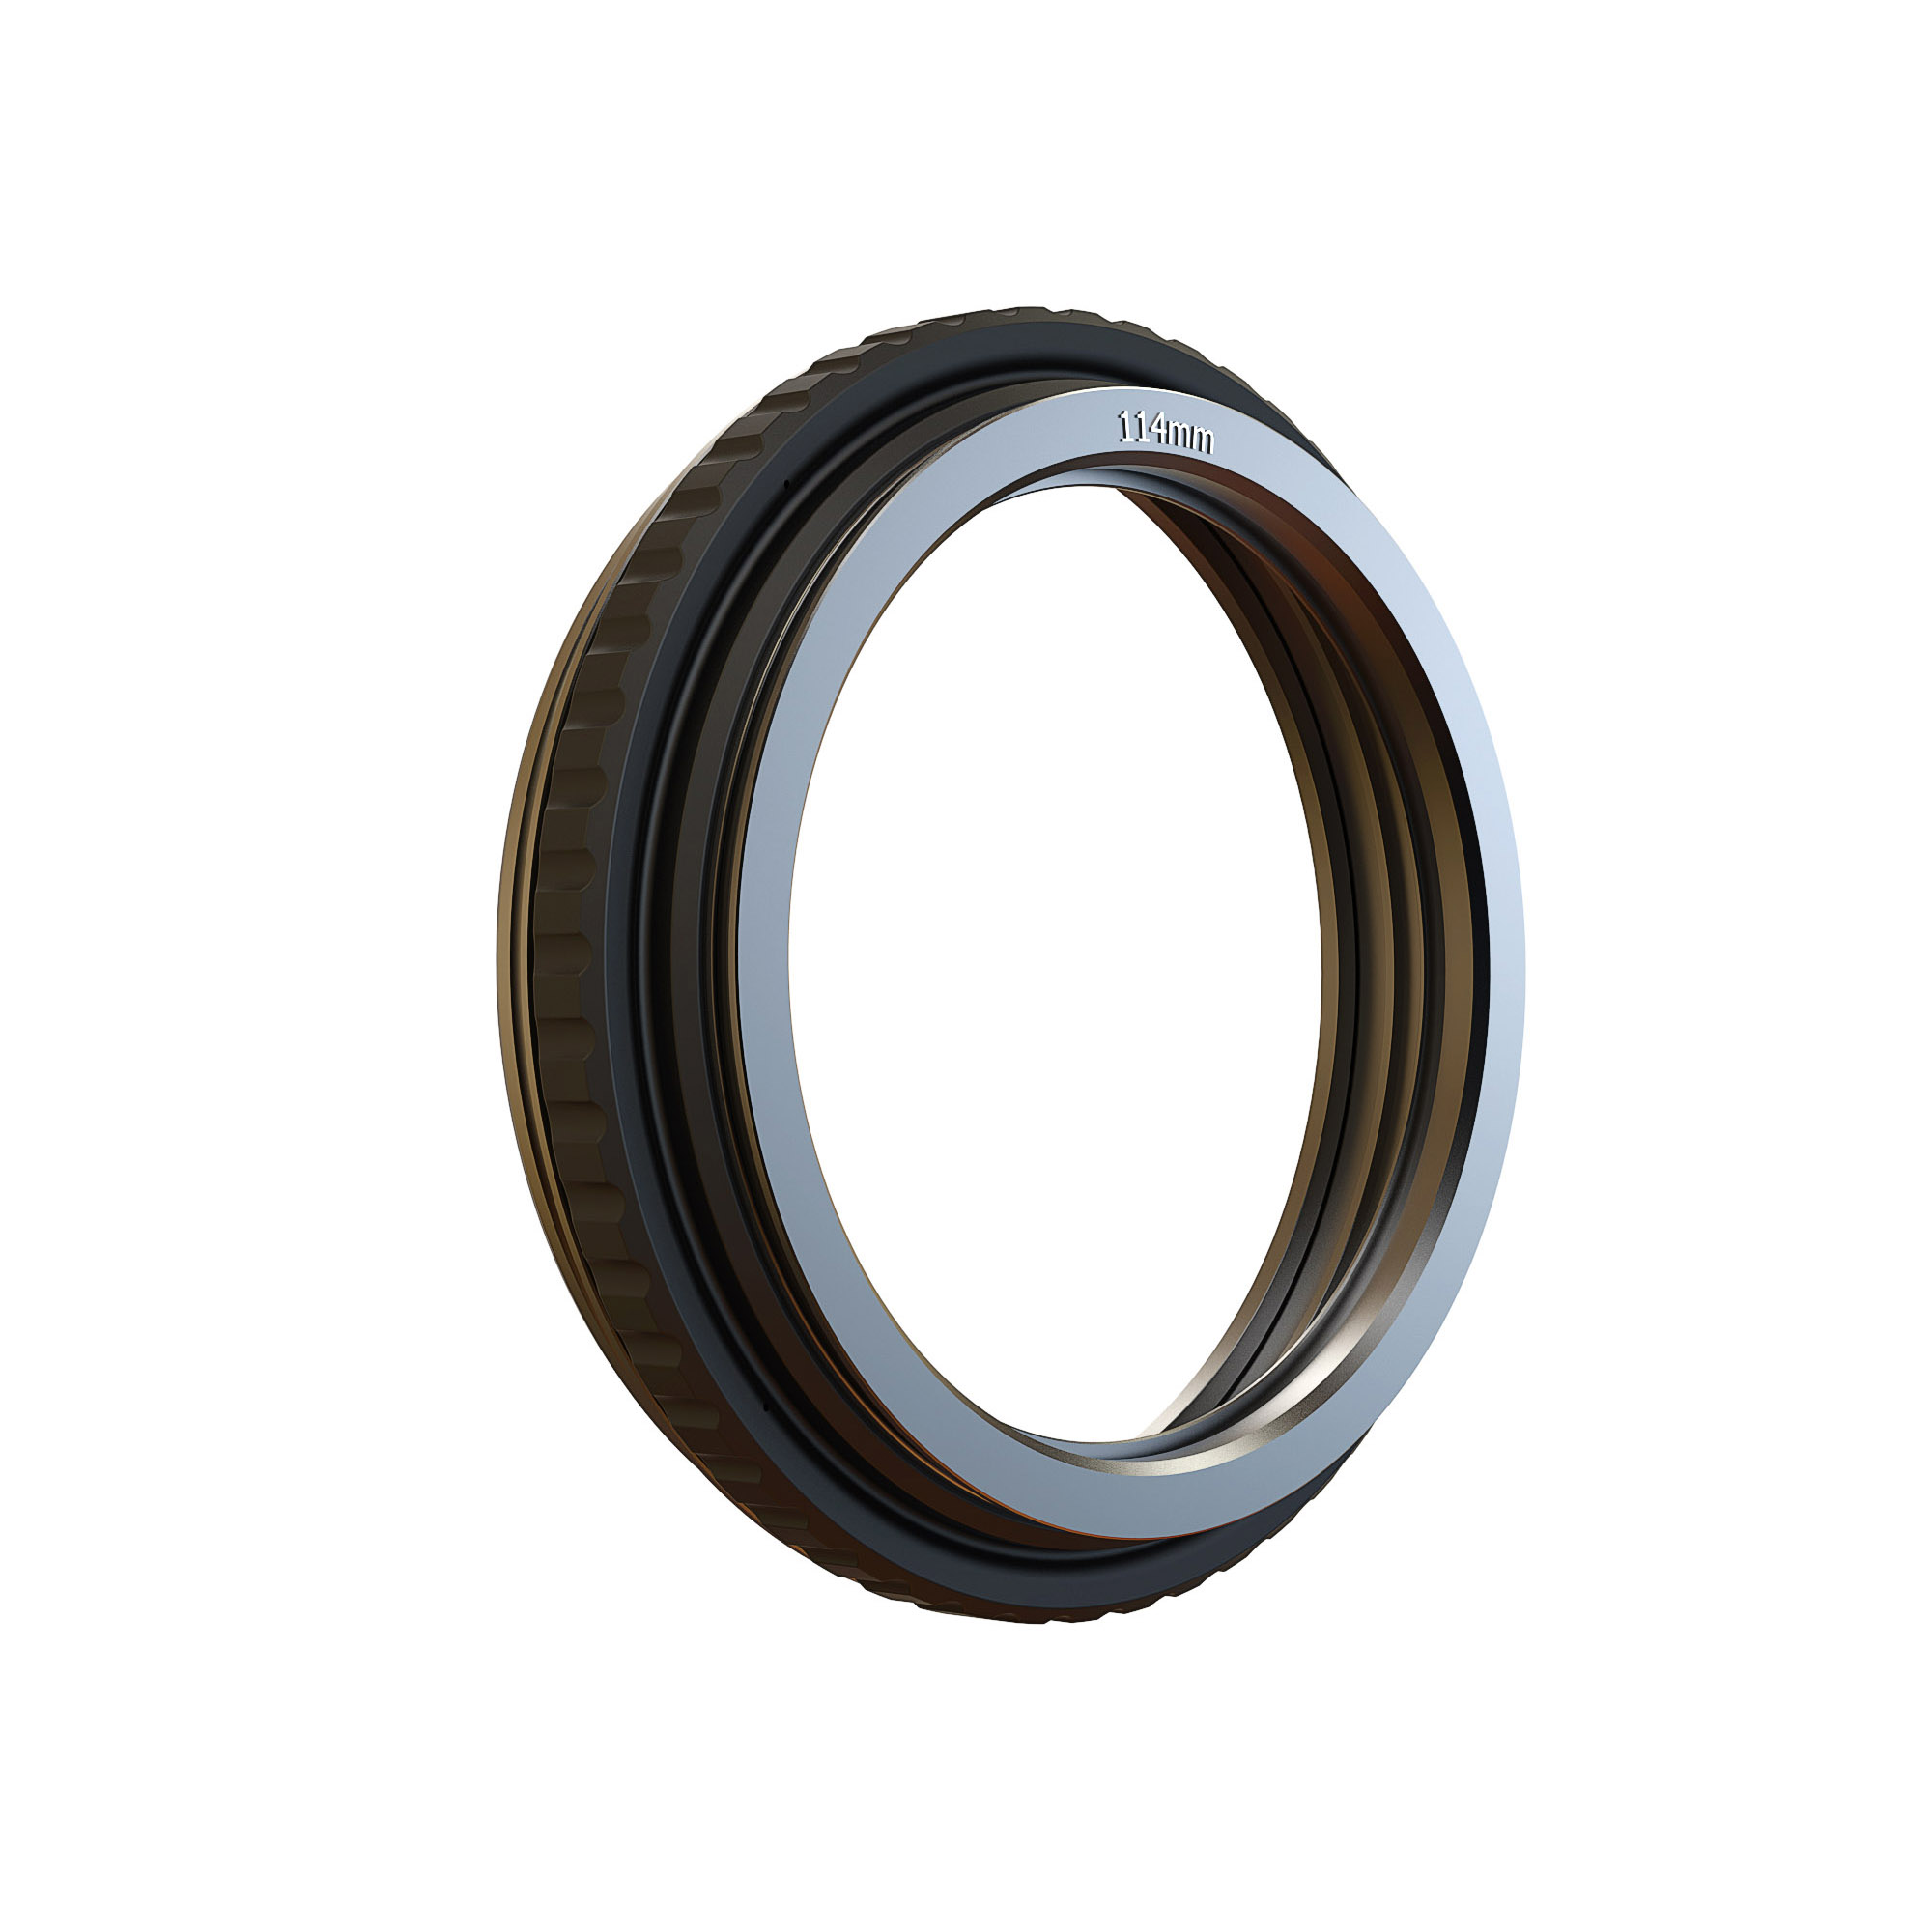 B1250.1001 143mm Donut 114mm Threaded Ring 1